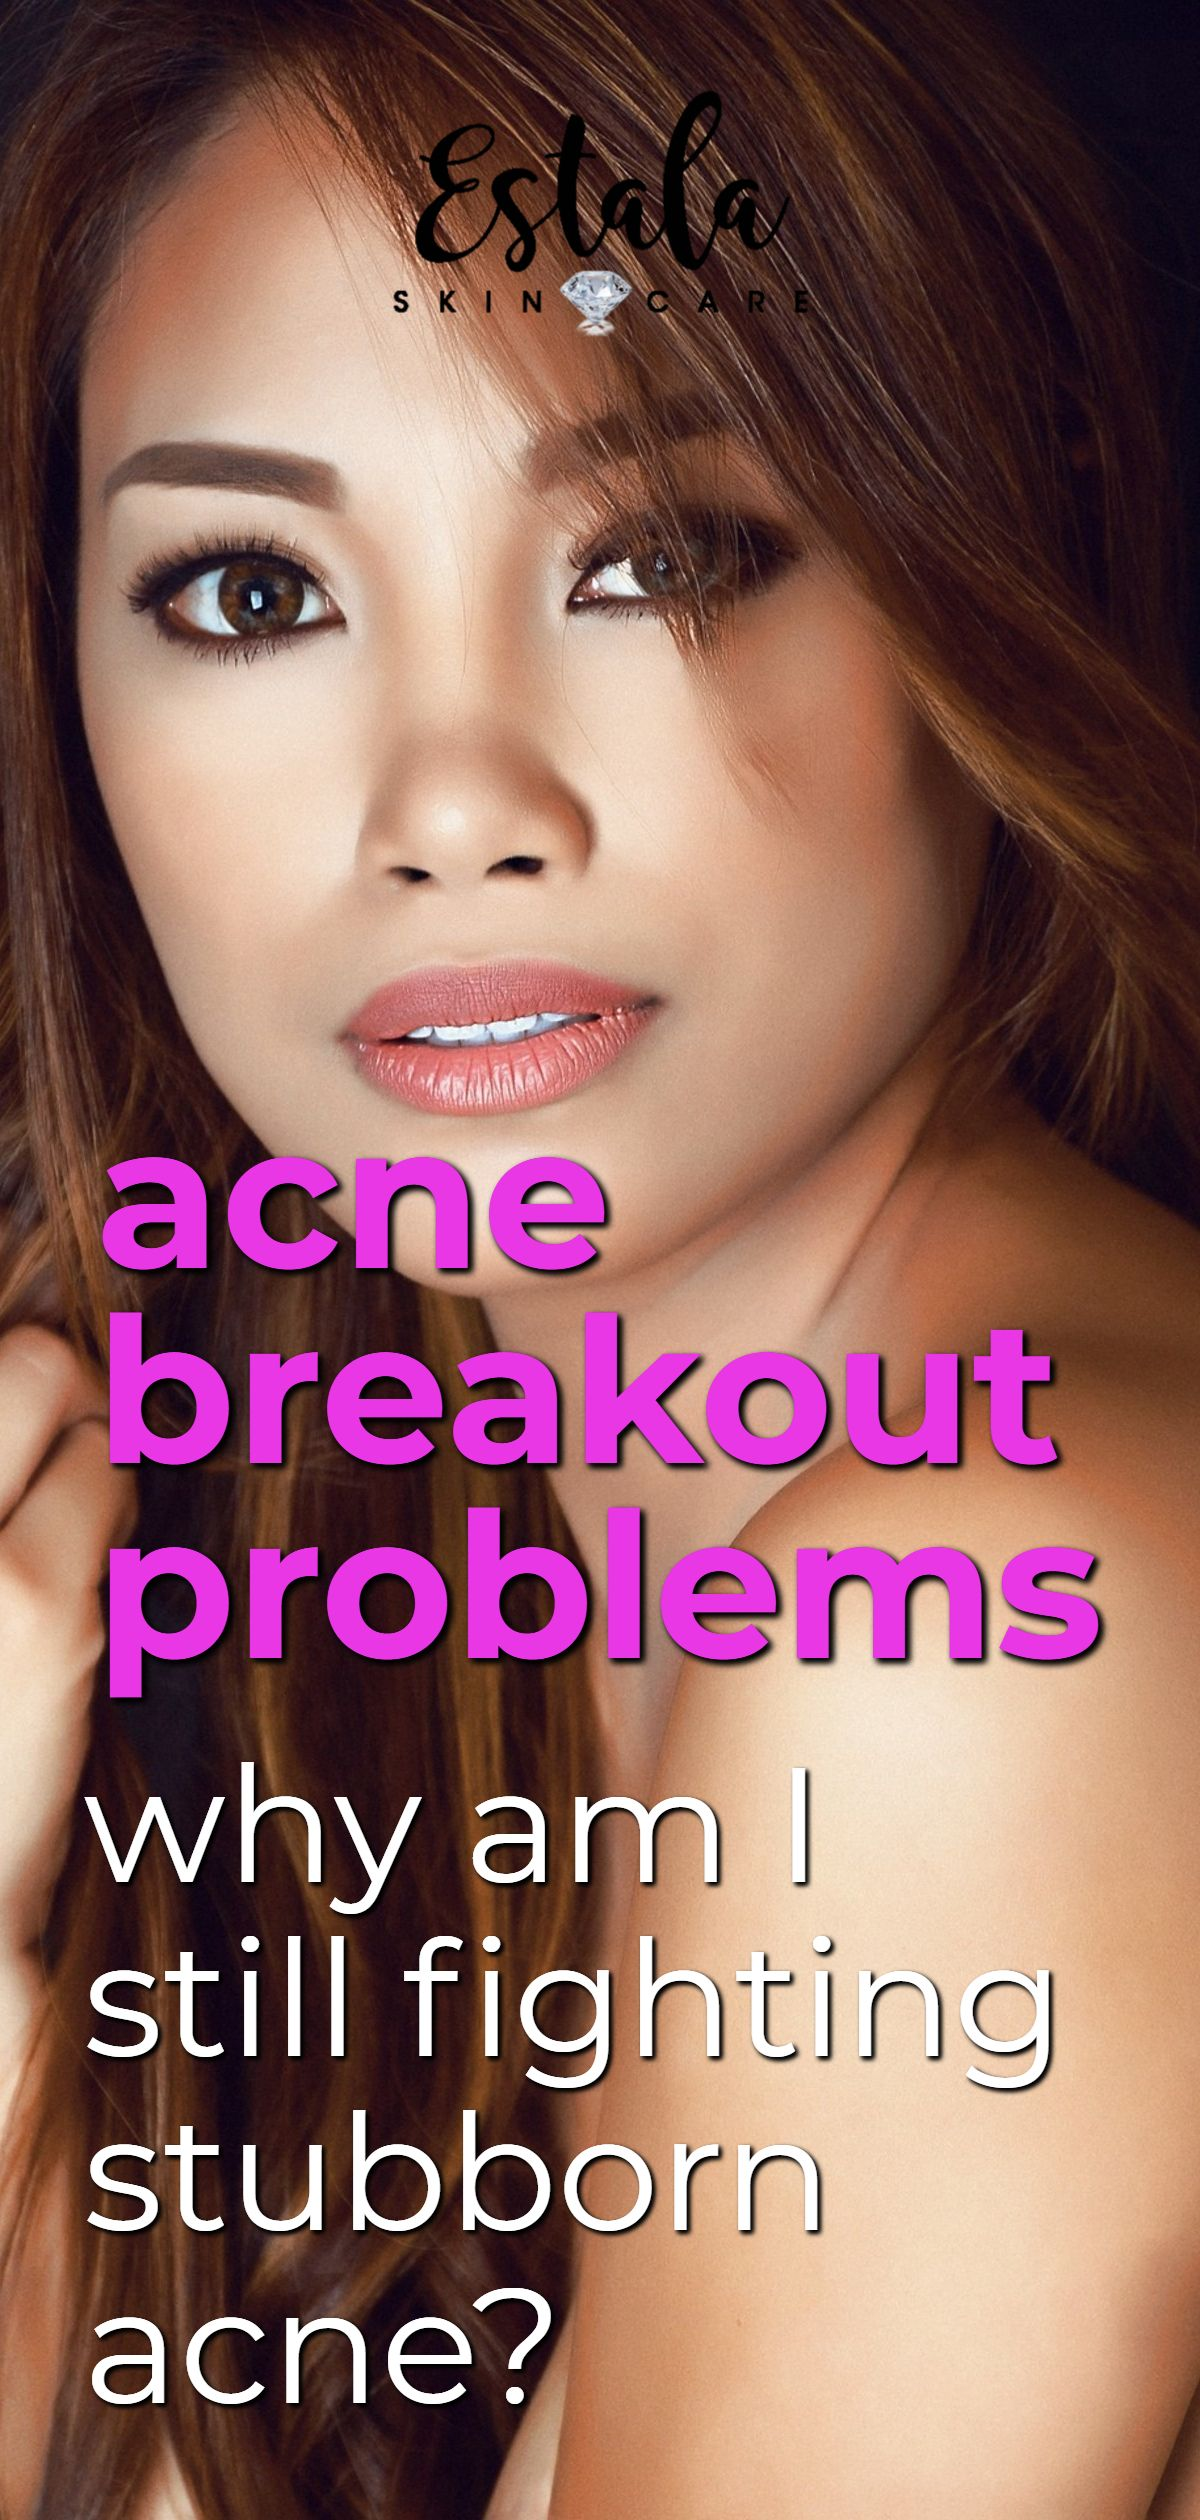 3 Hidden Causes For Your Acne Breakouts (With images